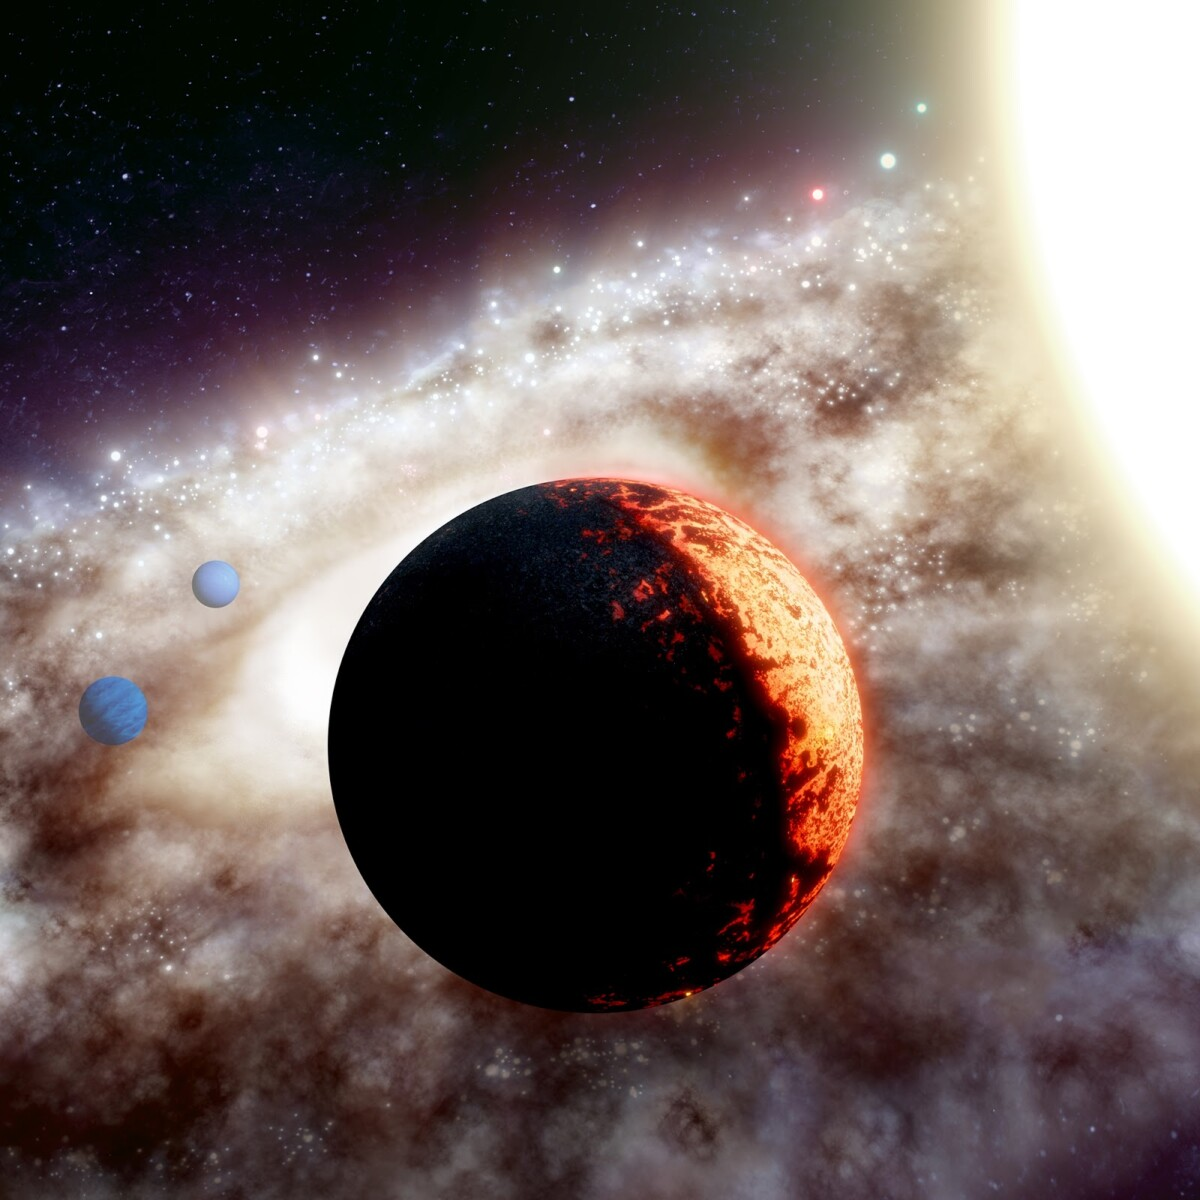 One of the oldest exoplanets ever discovered